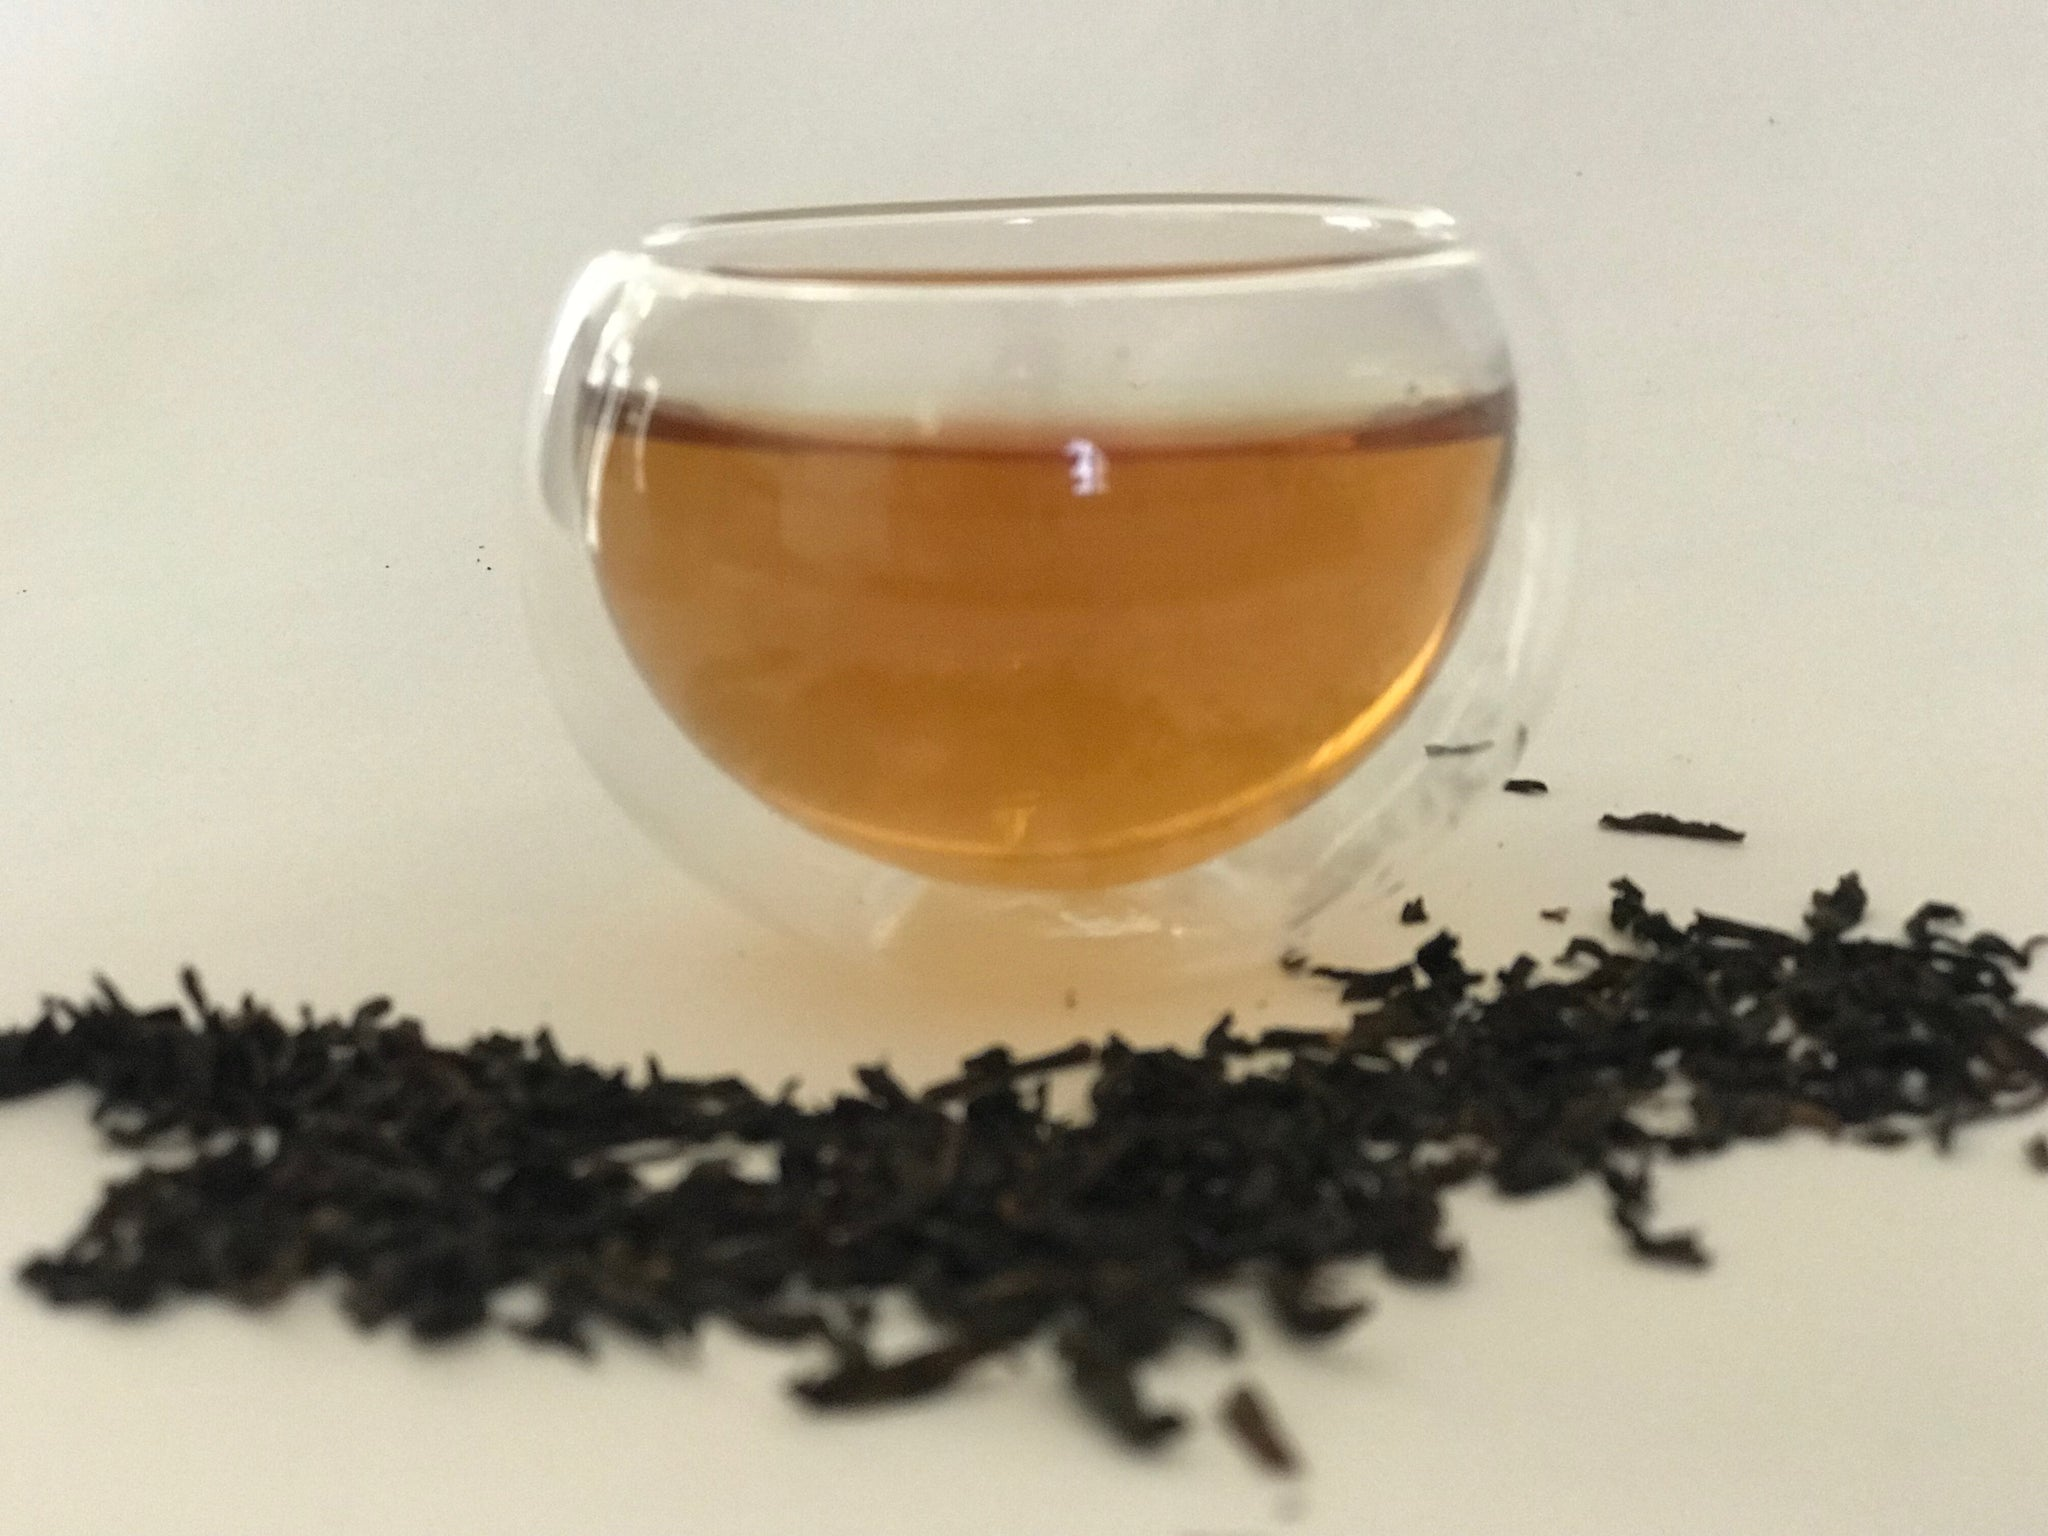 Lapsang Souchong (Smoky) is grown in the birthplace of black tea, Tong Mu Guan in Wuyi mountains in China. It is handcrafted and baked over pine wood using the traditional Chinese methods. It has a pine wood smoky aroma reminiscent of winter campfires and has a smooth taste with sweet and mellow aftertaste.